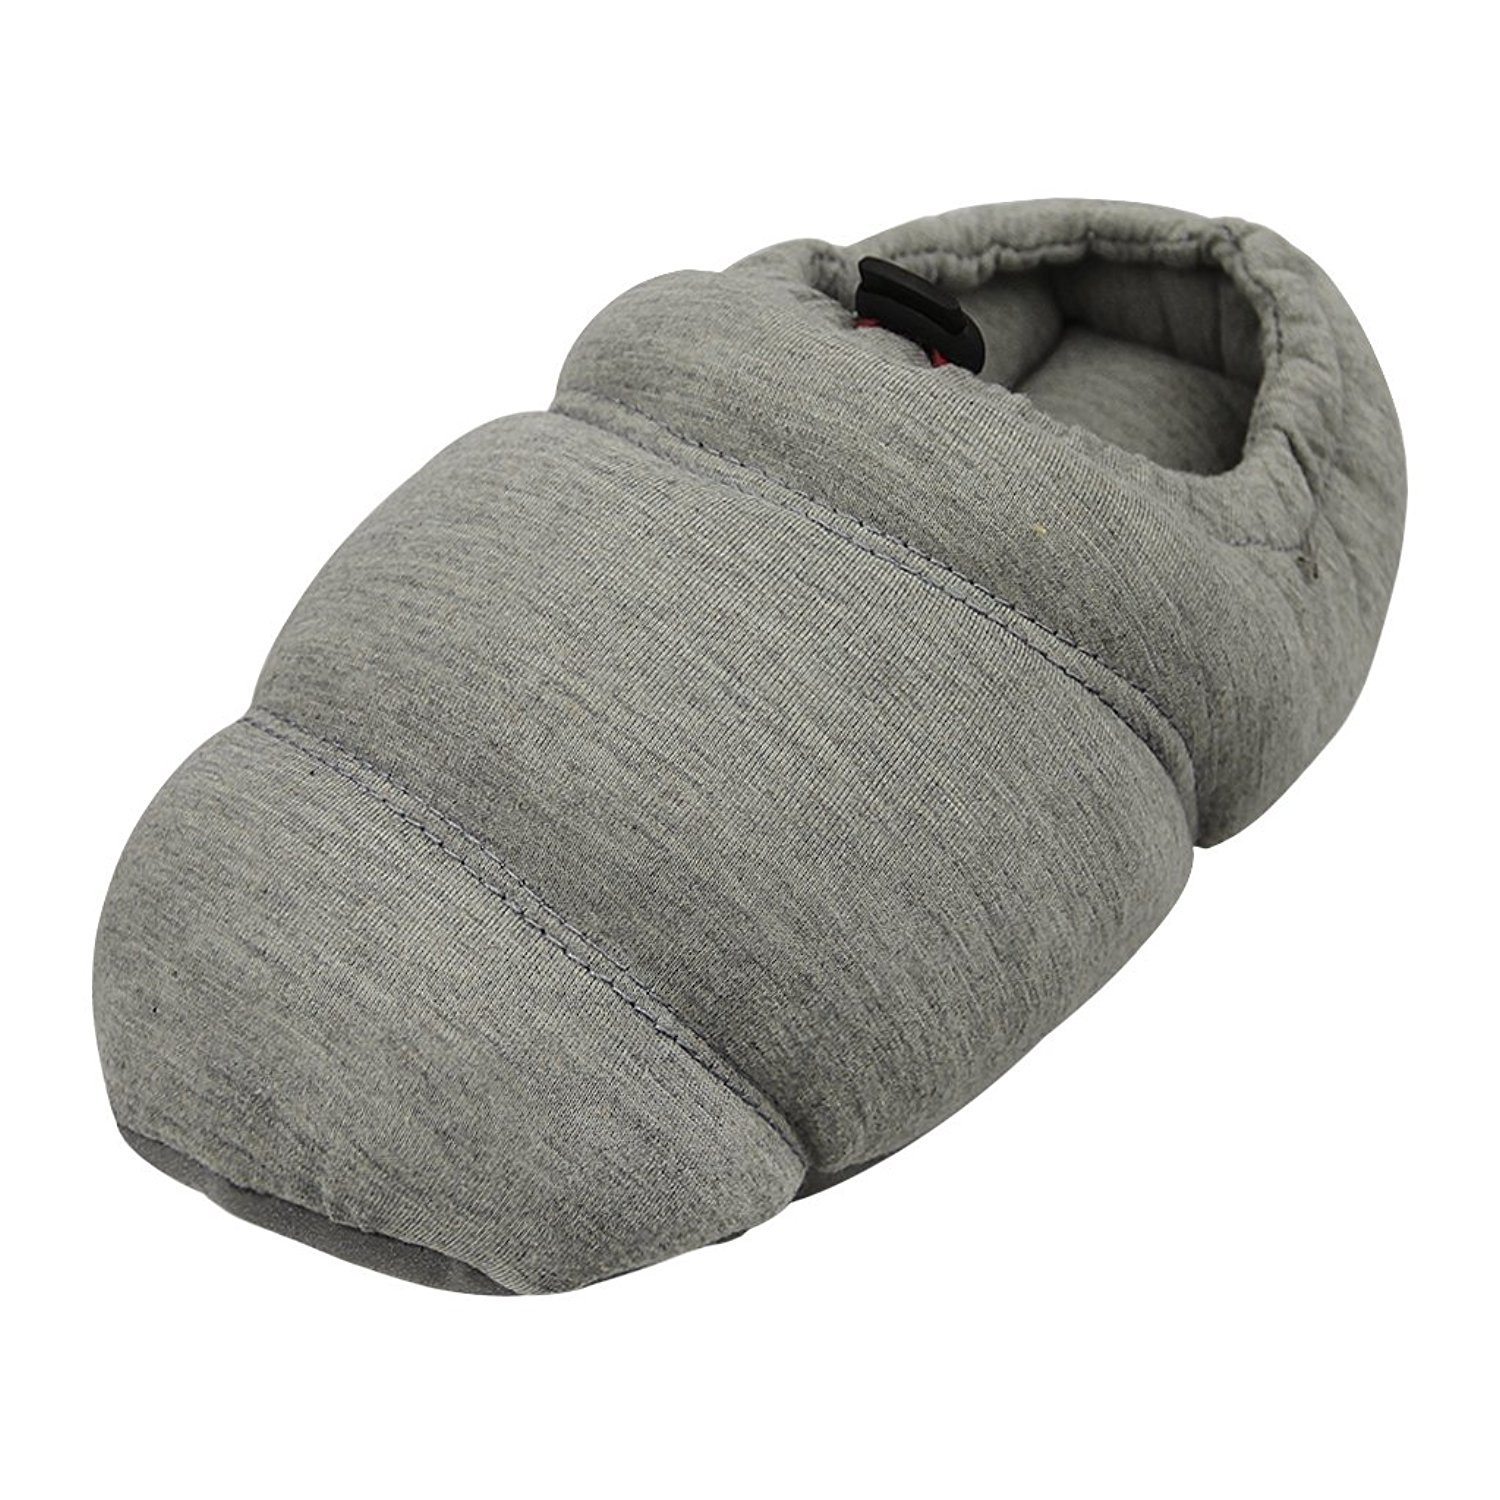 Ladies Slipper,Women Men's Comfort House Slippers,Ladies Anti-Slip Autumn Winter Memory Foam Warm Travel Home Office Plush Bedroom Indoor/Outdoor Slipper Shoes Female Slippers Boots Foot Warmer